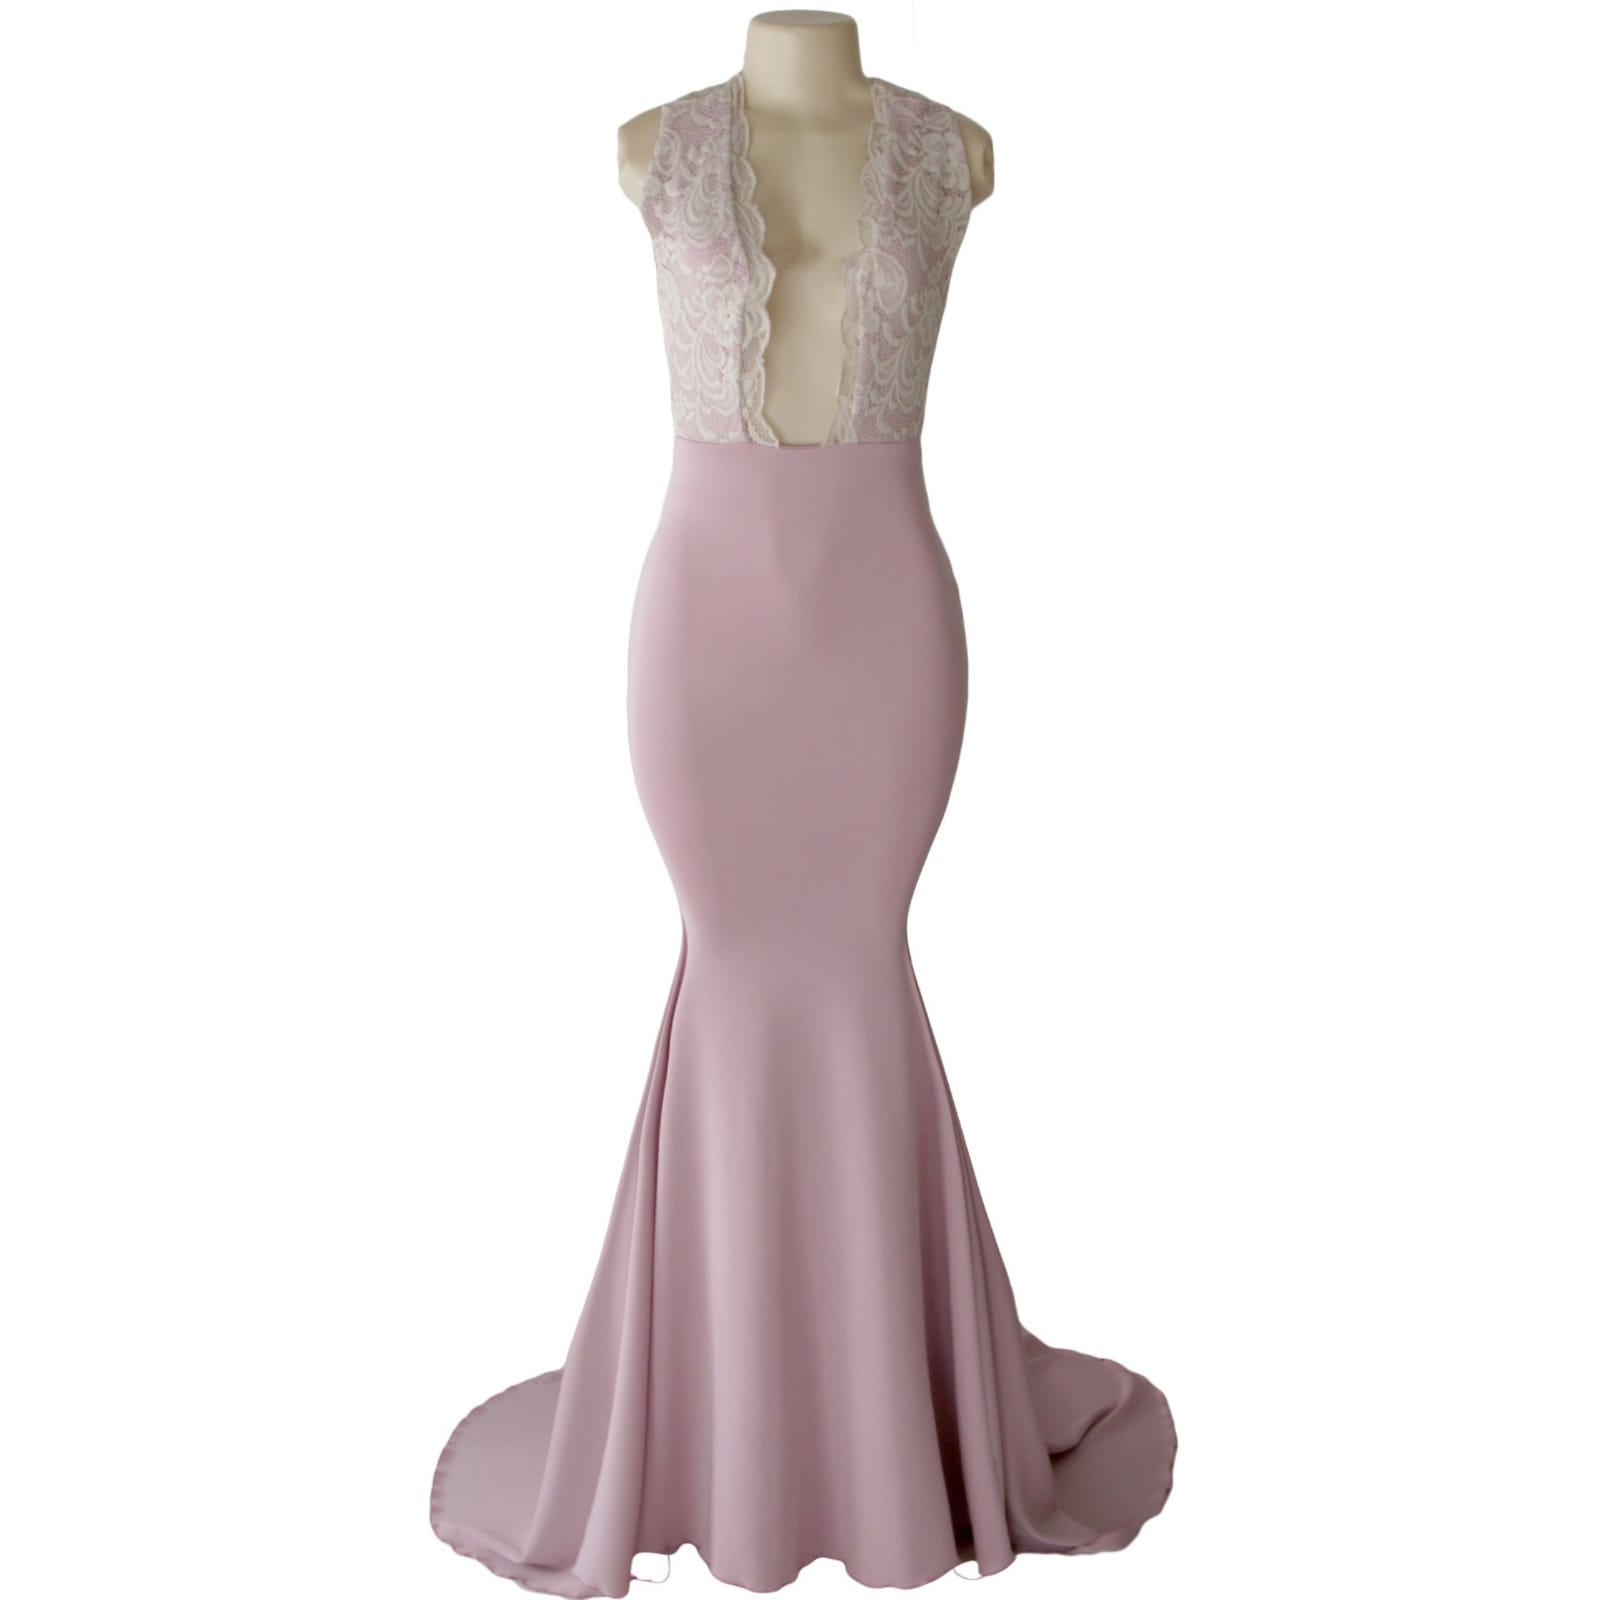 Dirty pink and cream soft mermaid prom dress 6 dirty pink and cream plunging neckline soft mermaid matric farewell dress with an open back and crossed lace back straps with a train.